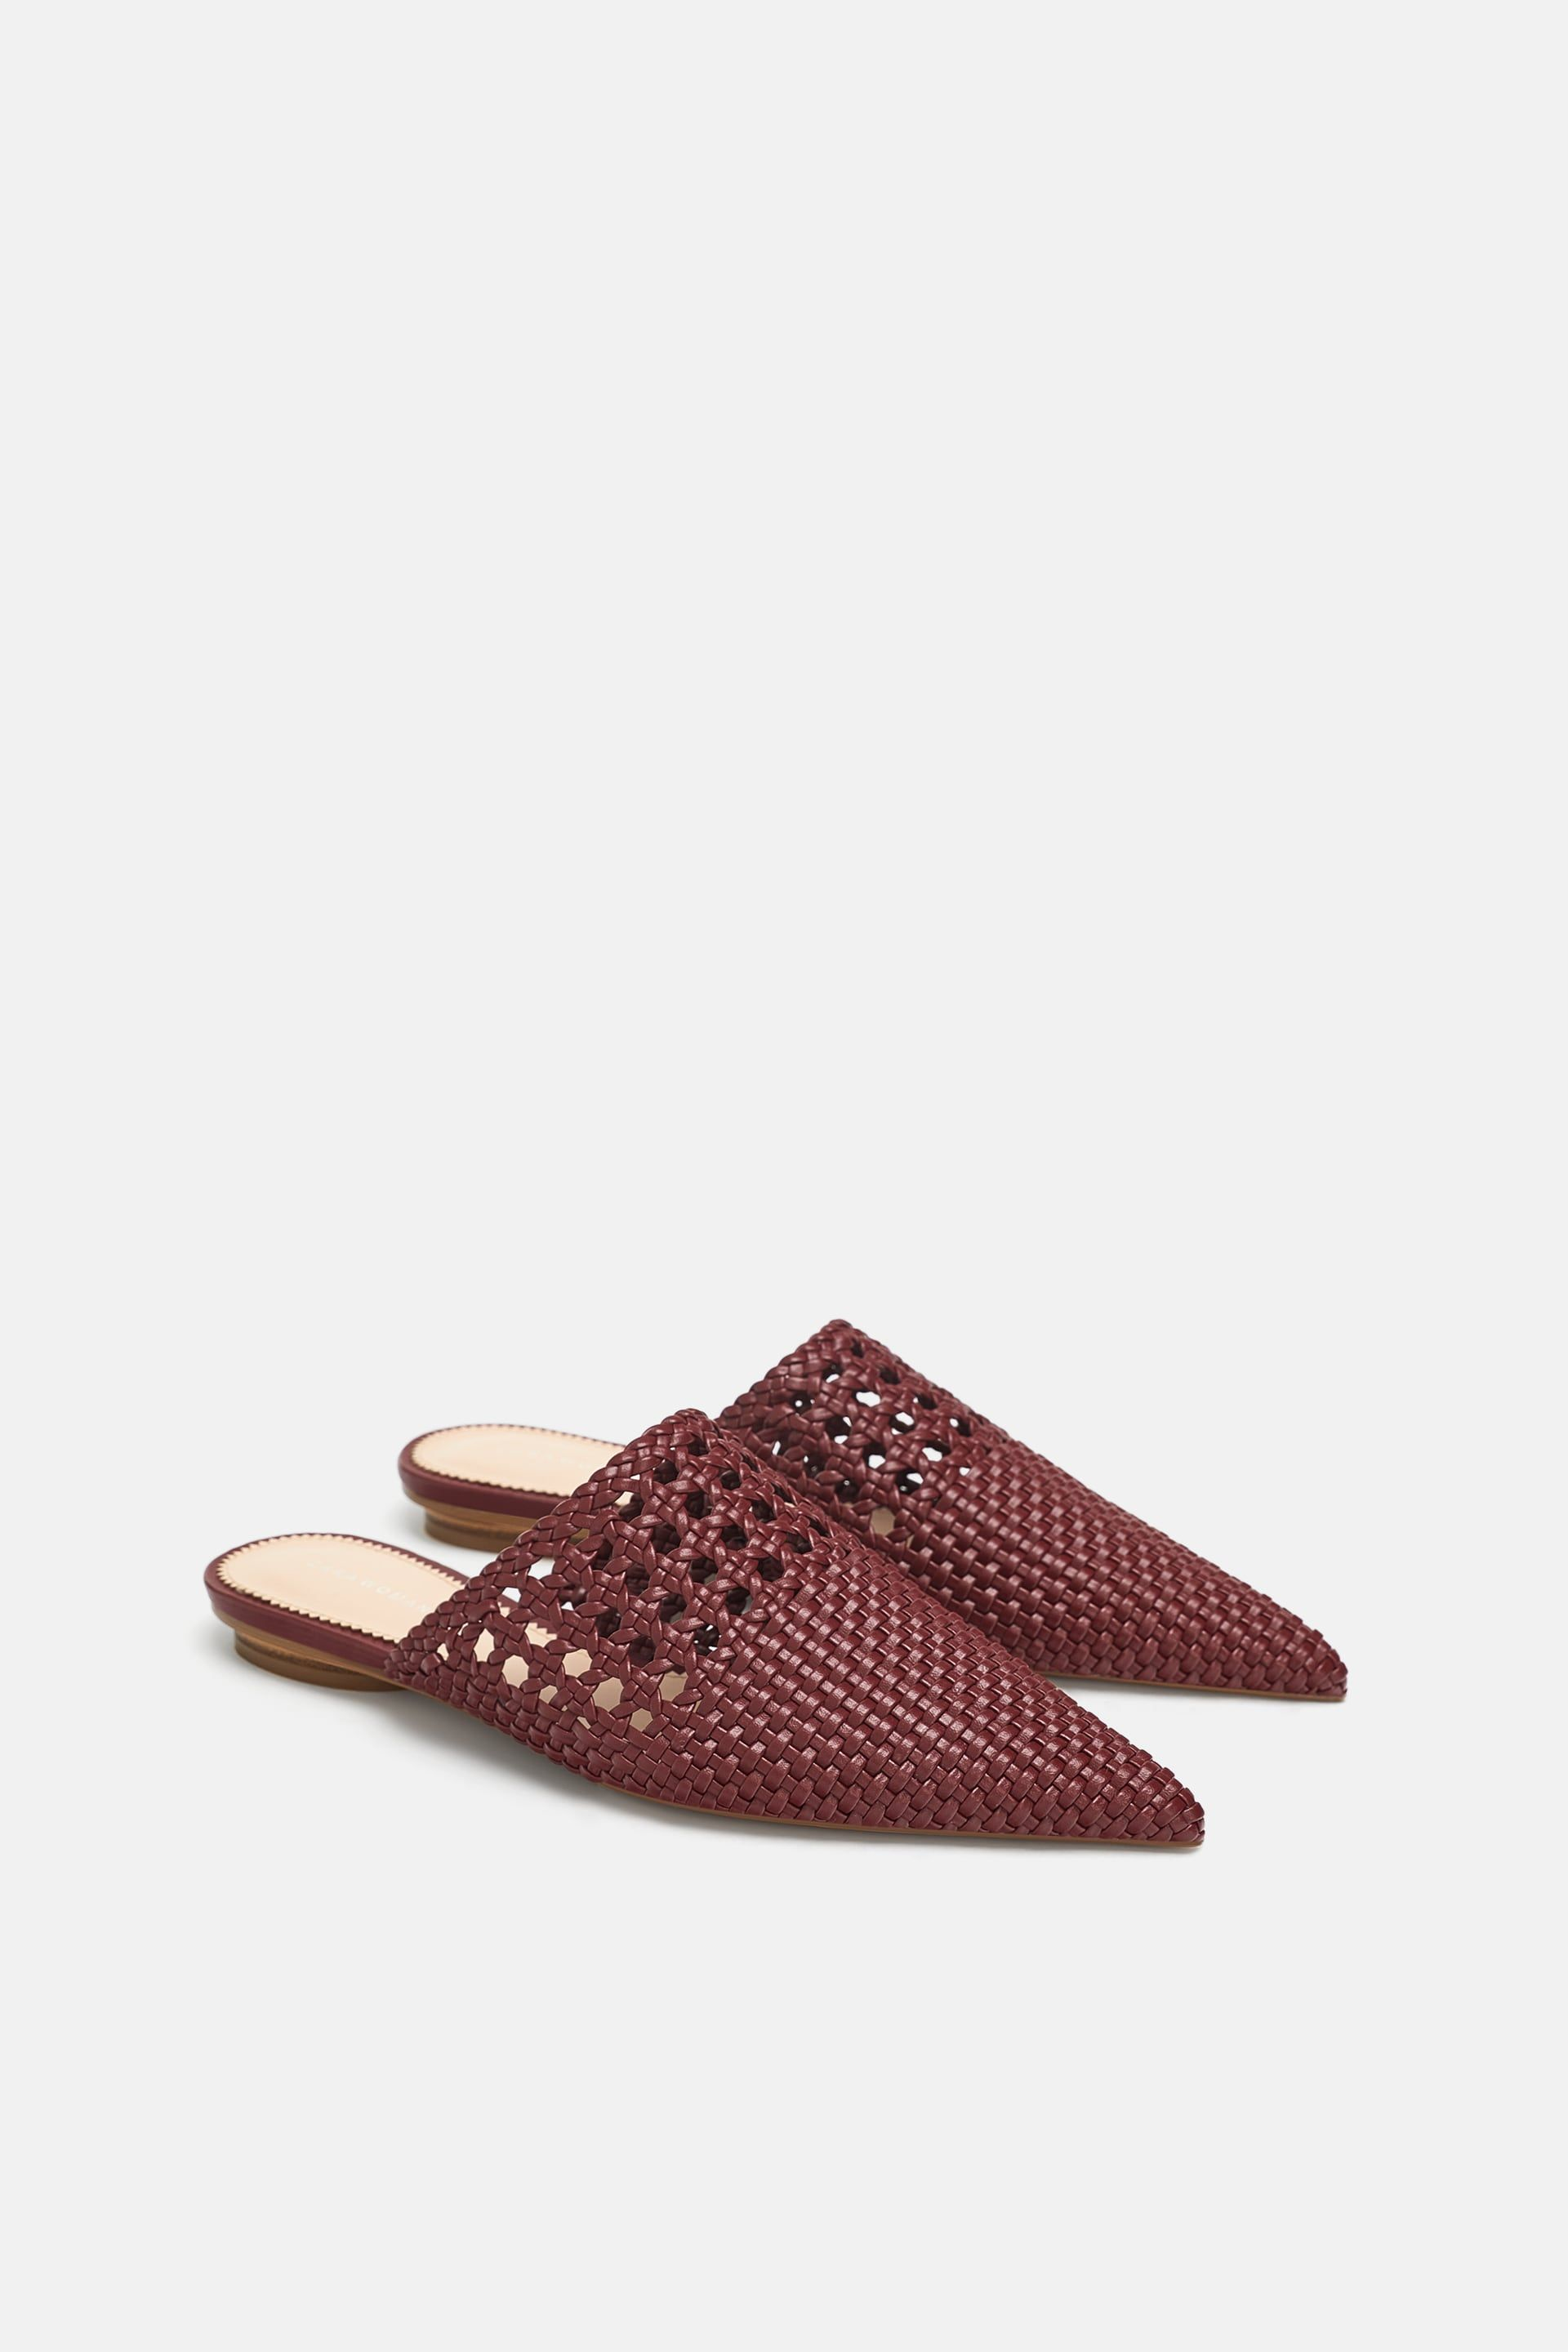 ab62cb9ca6d8a Image 1 of BRAIDED FLAT MULES from Zara | Outfits: Wishlist | Flat ...